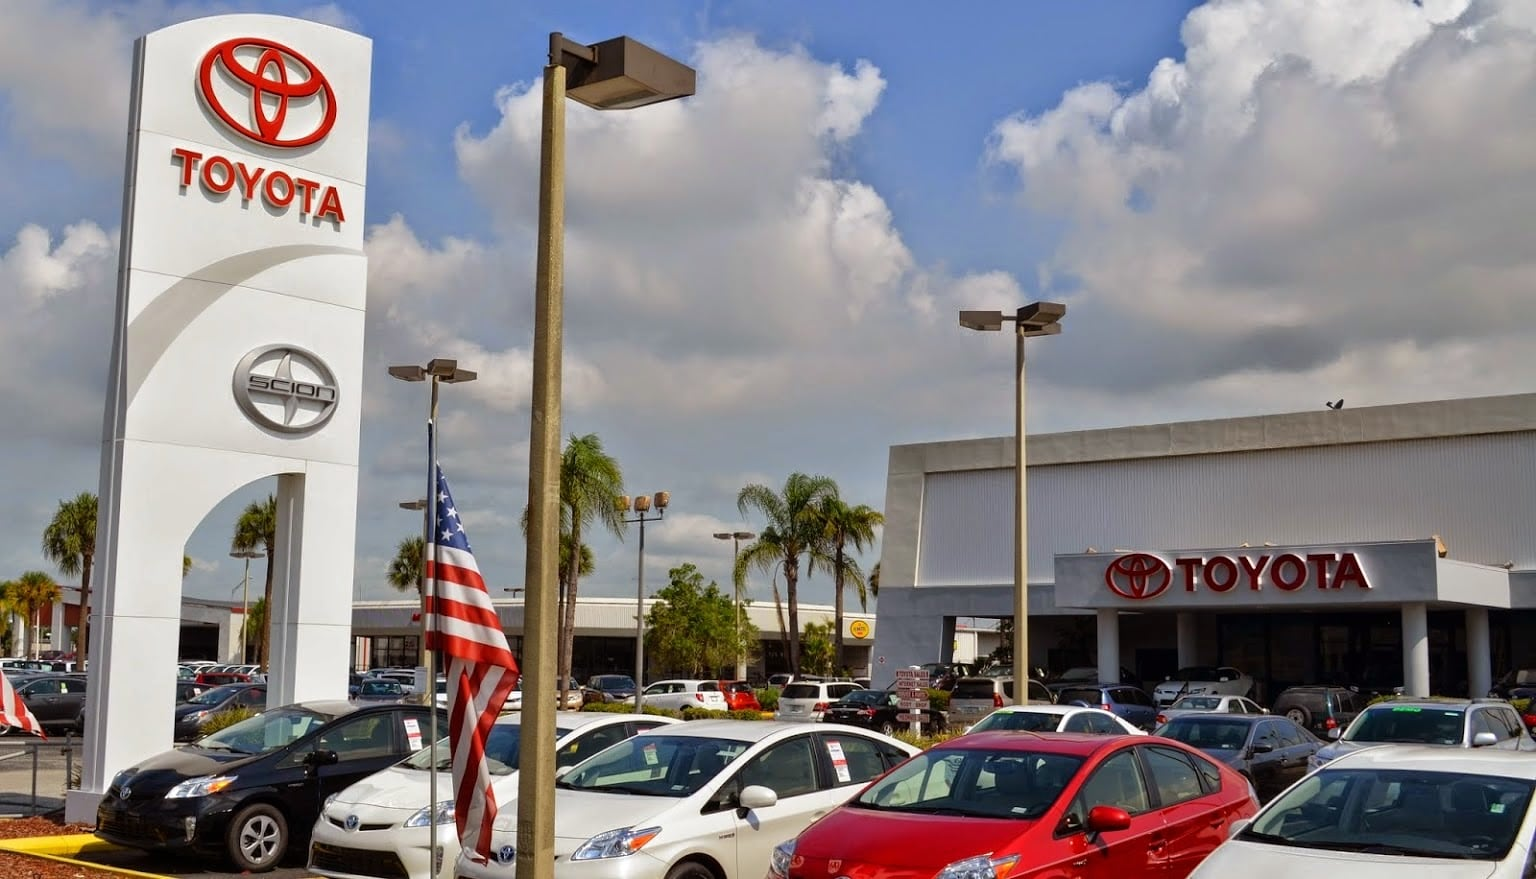 Toyota Dealers Near Me >> Find Toyota Dealers Near Me in Tampa Bay FL | Toyota Directions & Hours